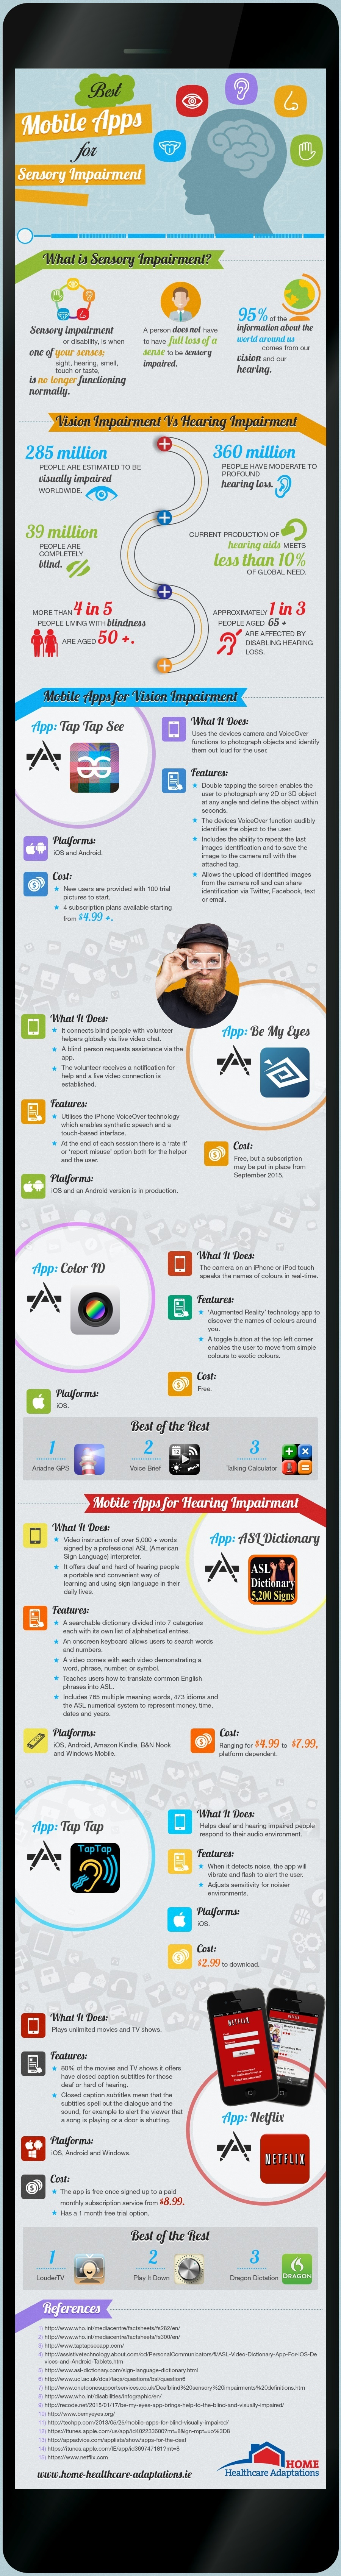 Best Mobile Apps for Sensory Impairment Infographic